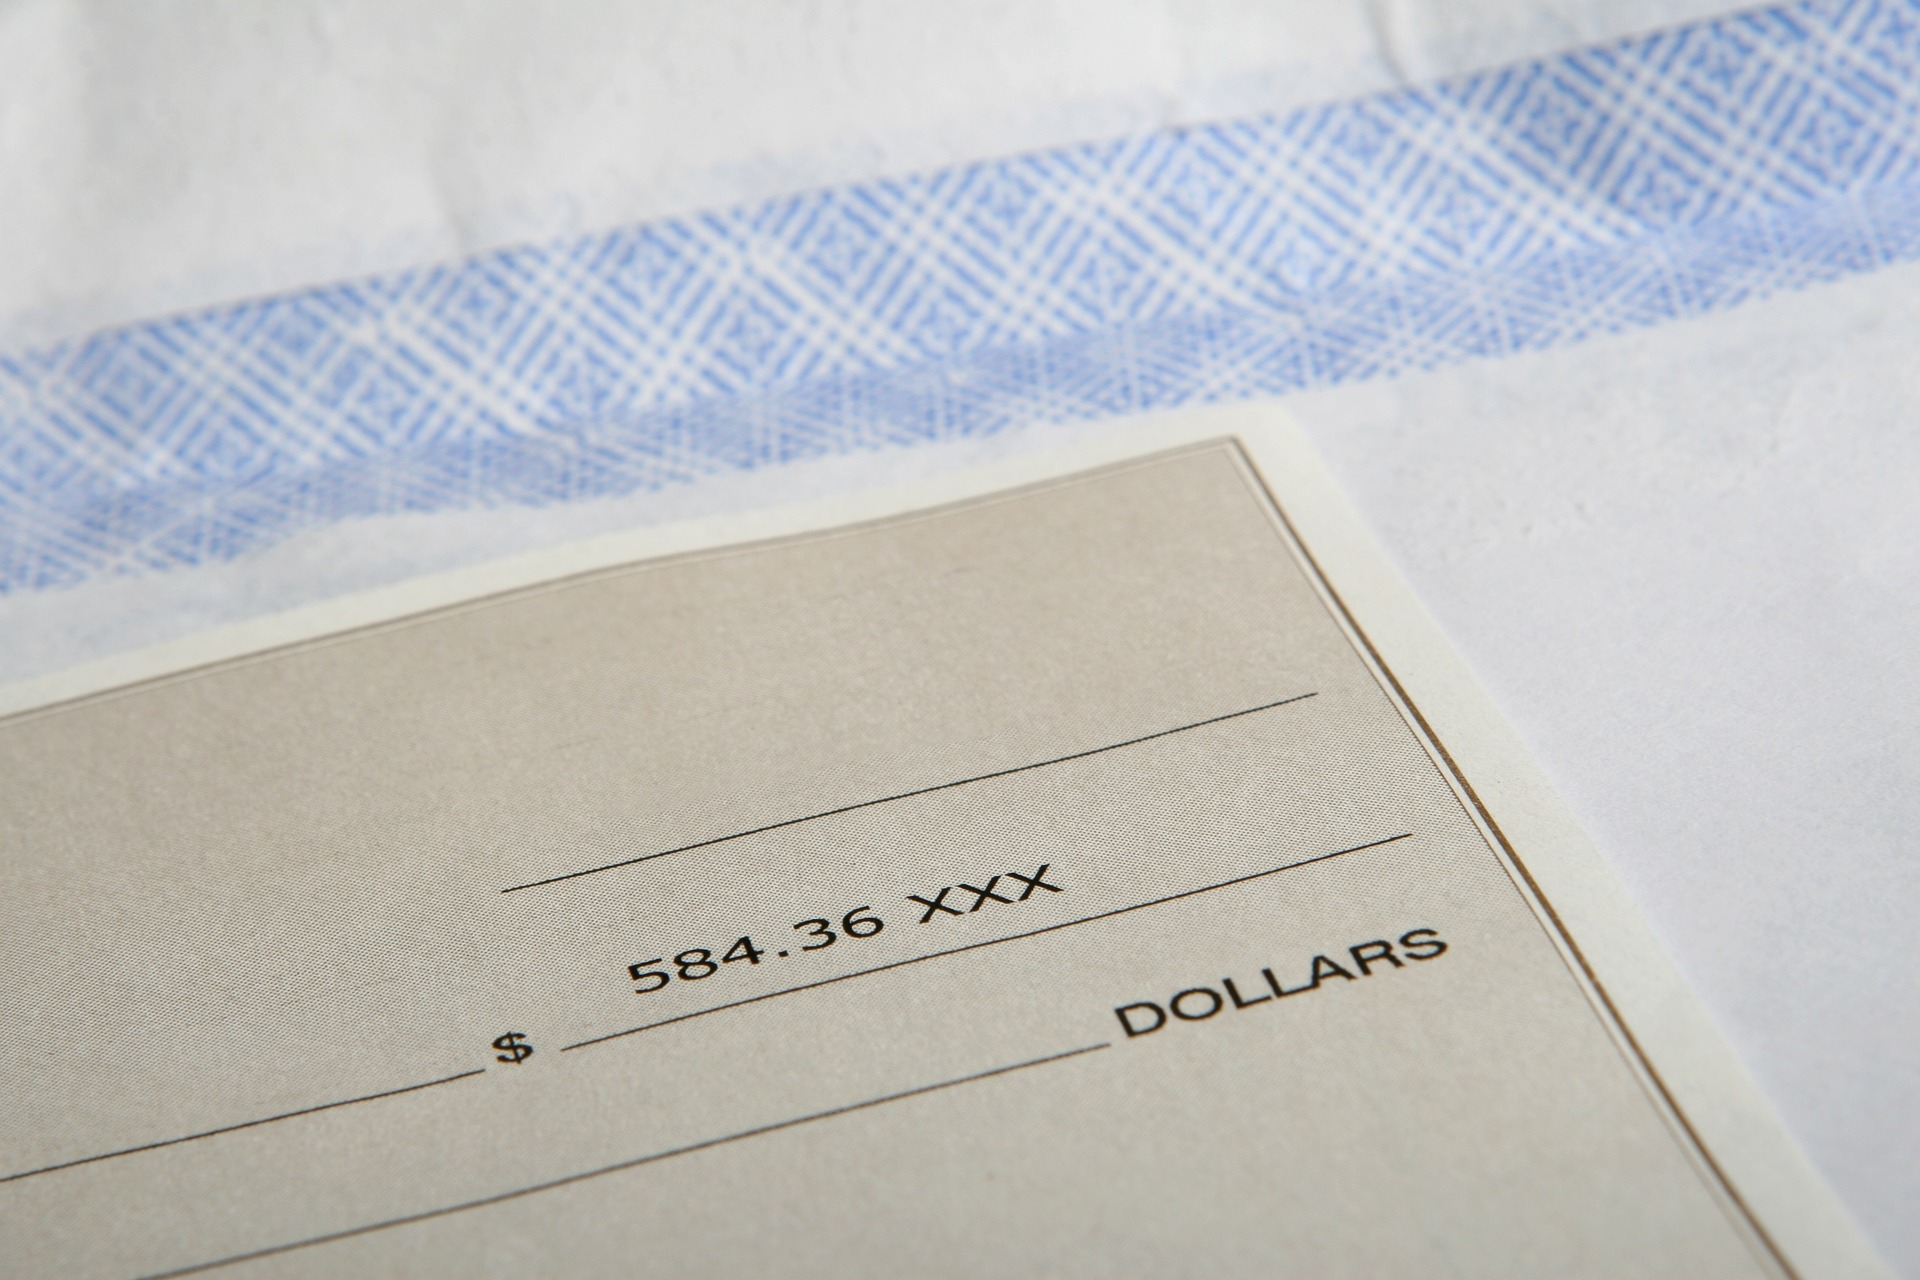 upclose-picture-of-a-paycheck-and-envelope